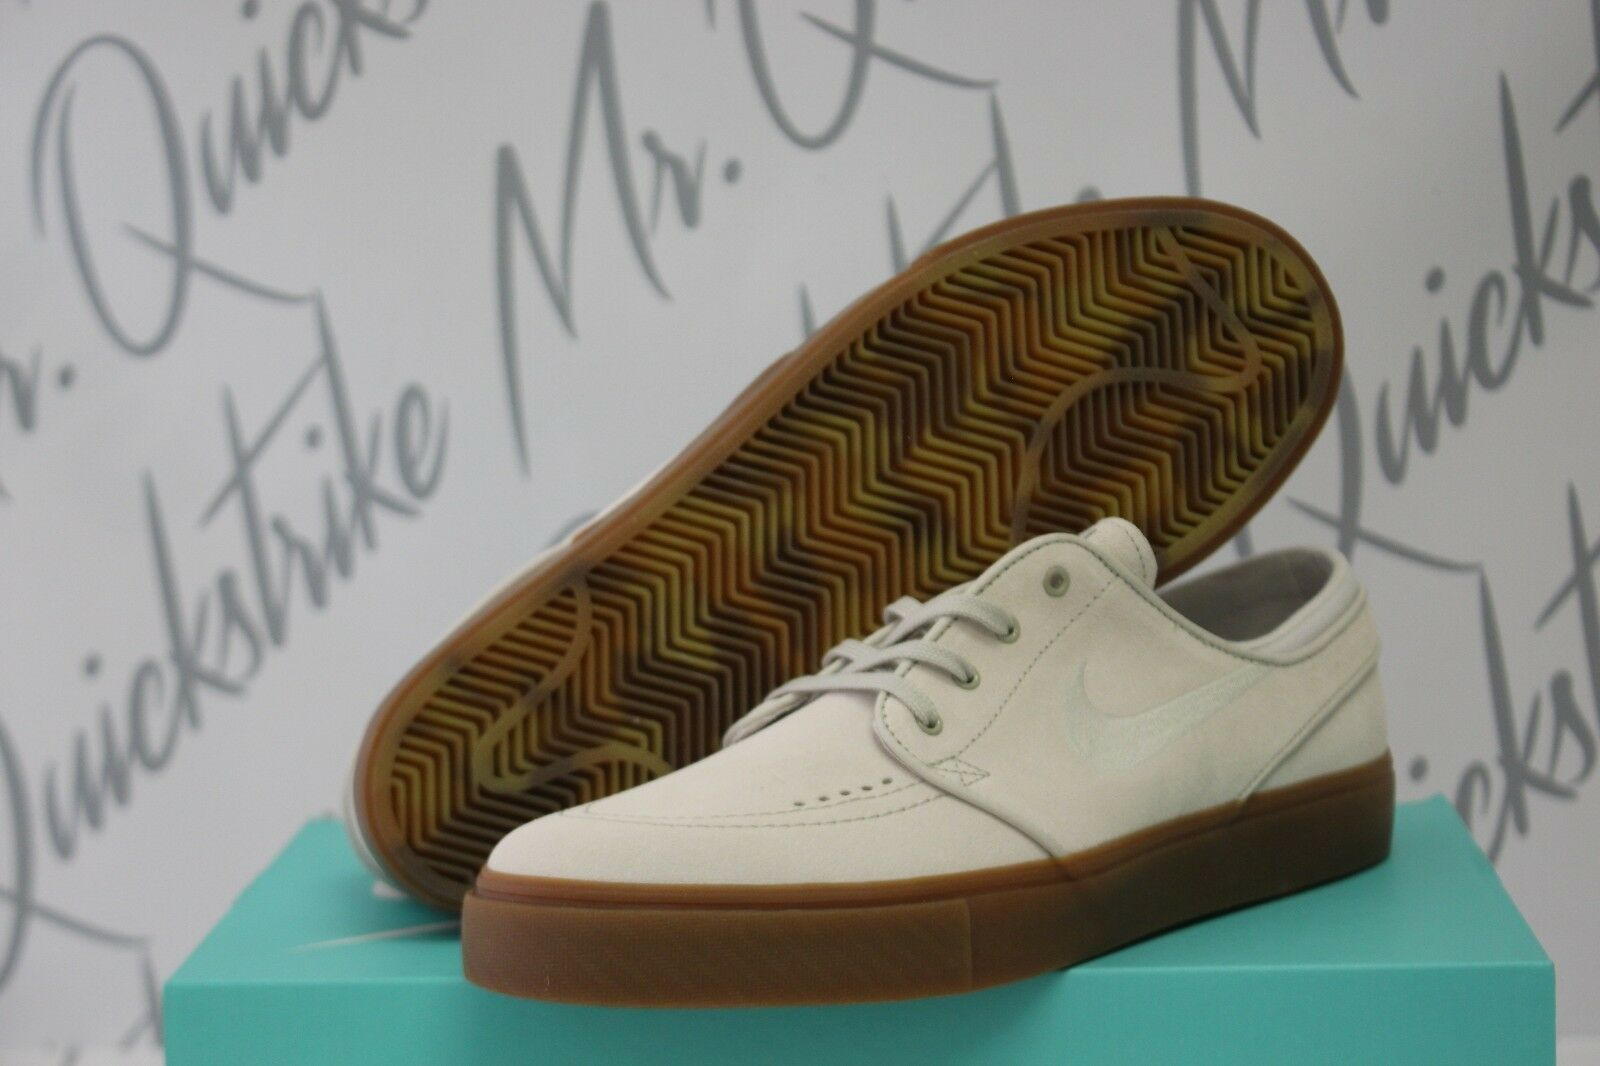 NIKE SB ZOOM STEFAN JANOSKI SZ 9.5 9.5 9.5 LIGHT BONE THUNDER Bleu GUM BROWN 333824 057 d4e694